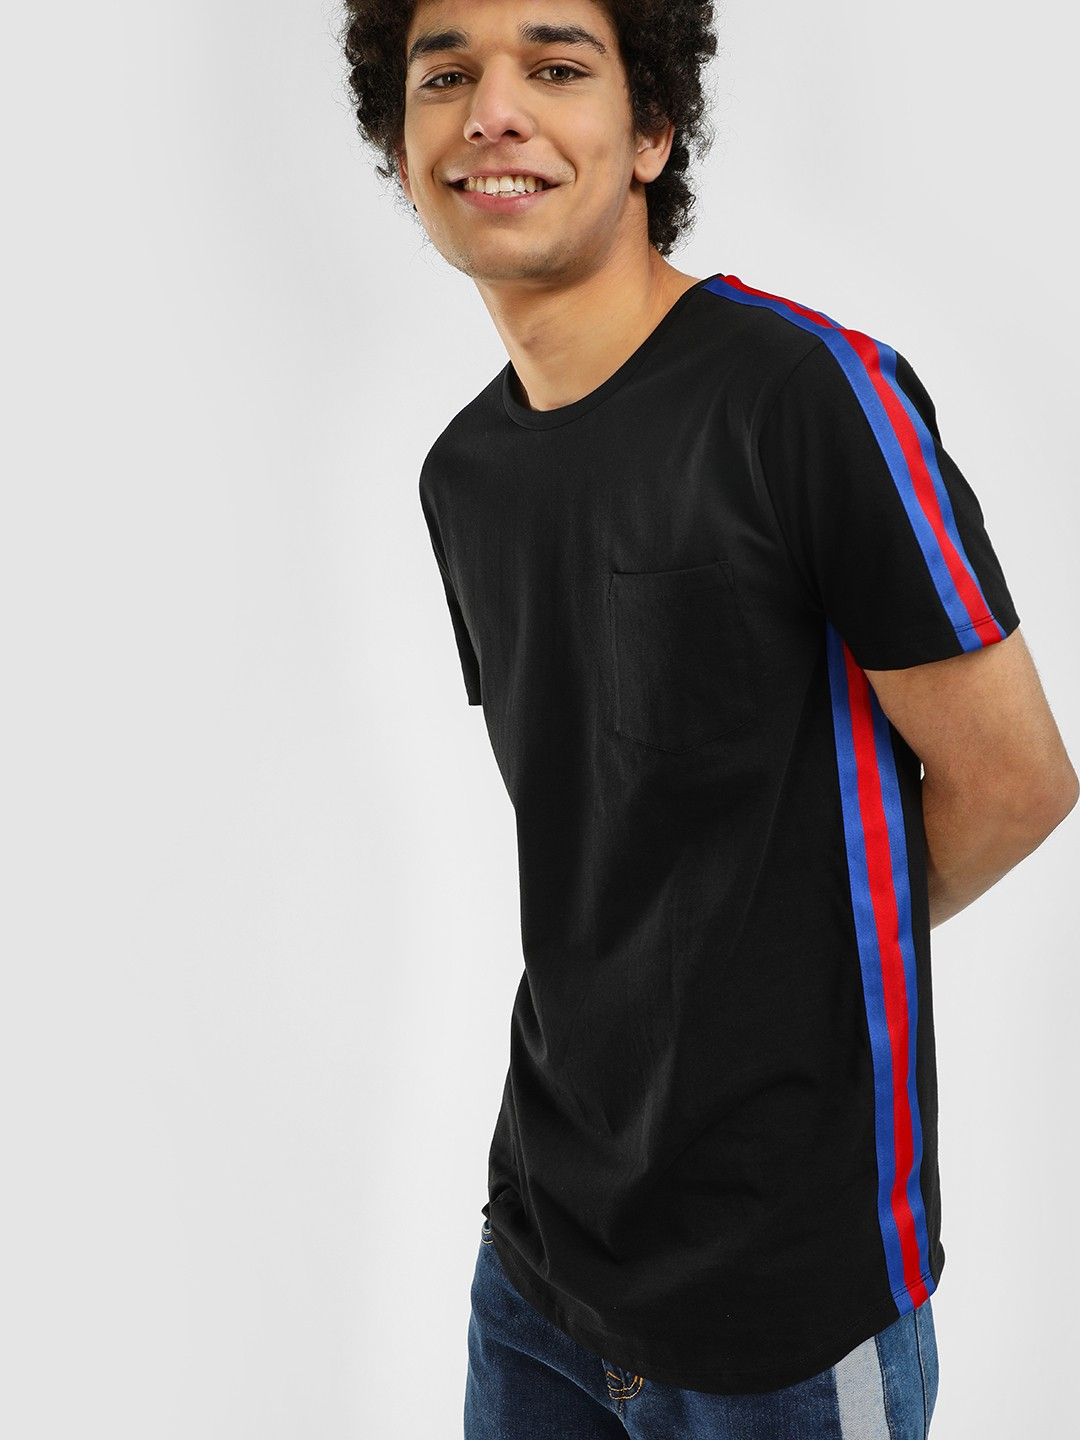 KOOVS Black Tape Trim Curved Hem T-Shirt 1